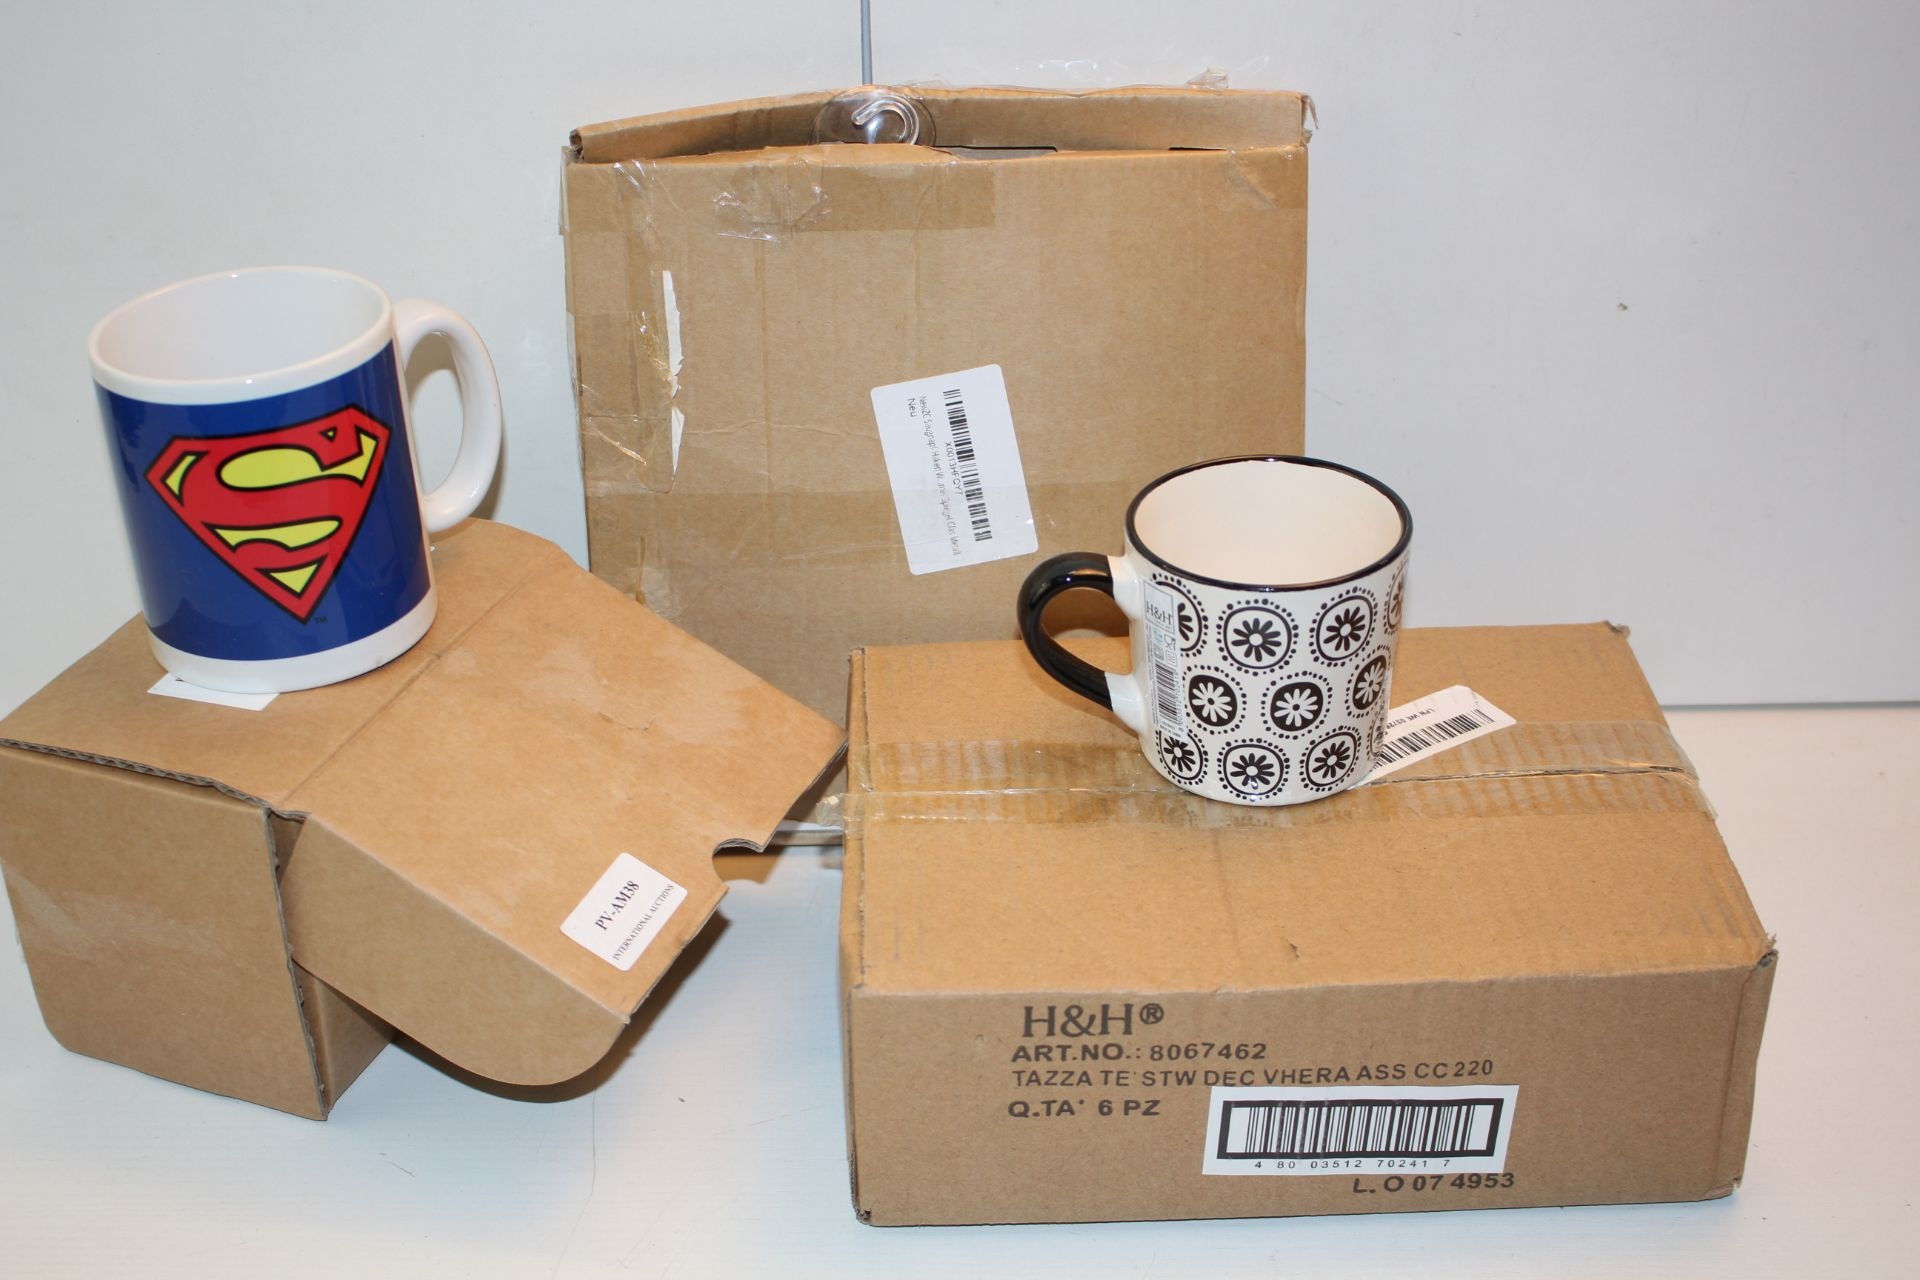 X3 BOXED ITEMS INCLUDING, 6 PIECE CUP SET, SUPEREMAN CUP AND OTHERCondition ReportAppraisal